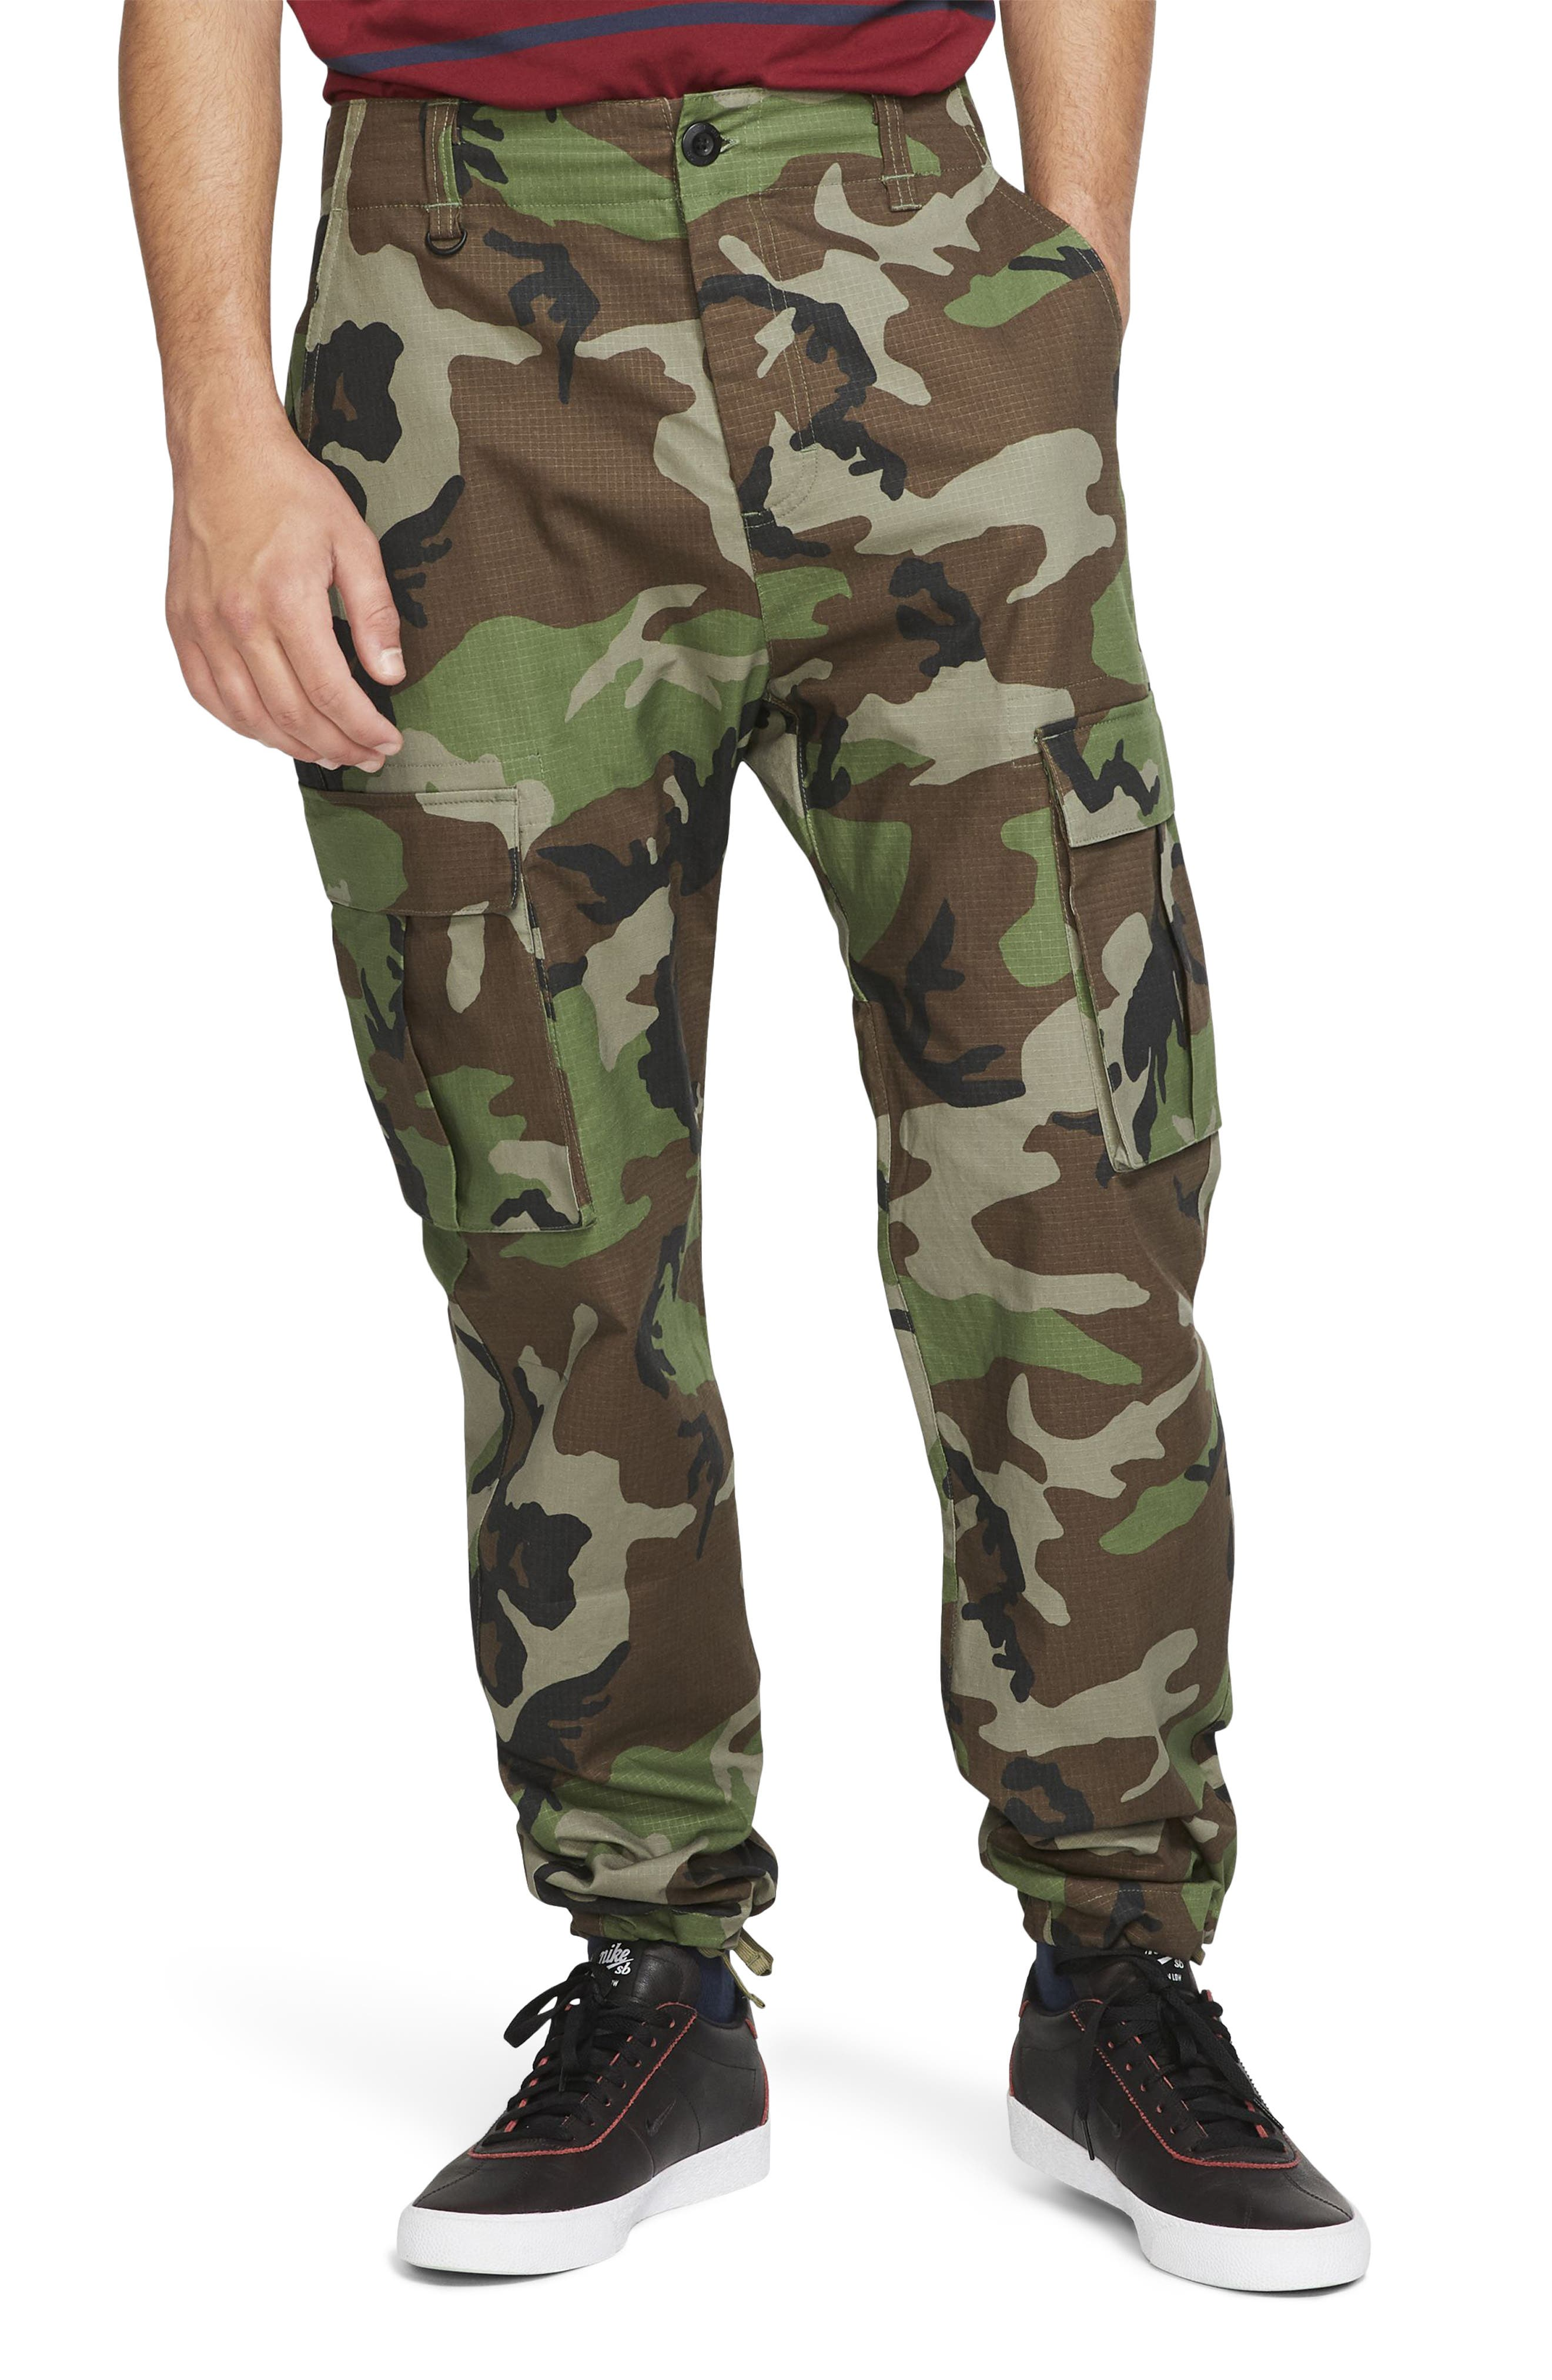 Designed with the rigors in skateboarding in mind, these durable cargo pants sport the comfort of stretchy ripstop fabric plus plenty of secure pockets. A rugged camo print underscores the ready-for-anything vibe. Style Name: Nike Sb Flex Skate Cargo Pants. Style Number: 6010379. Available in stores.